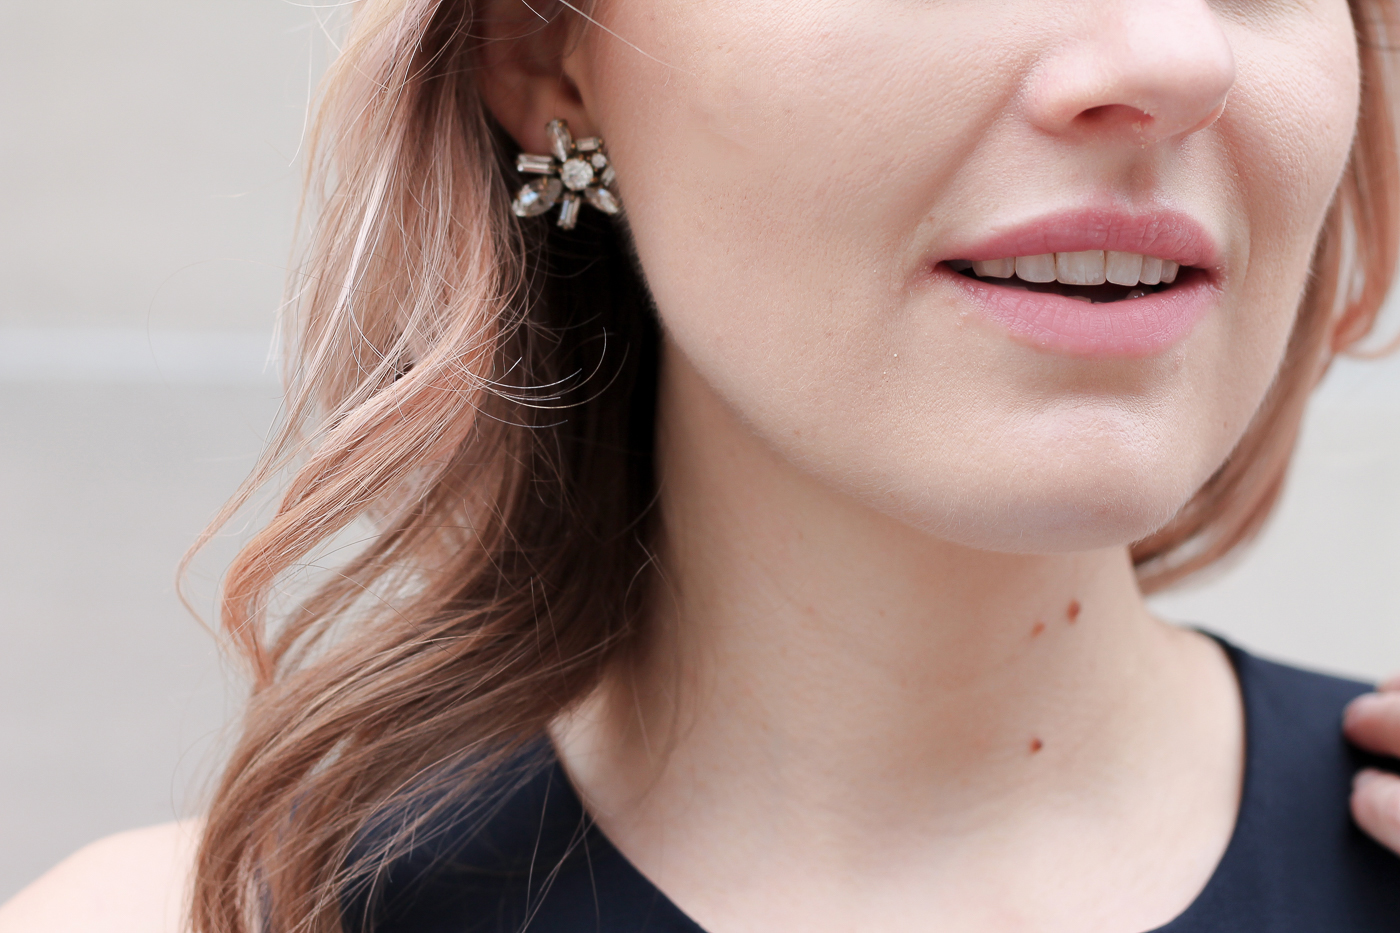 J.Crew Ornate 20's Earrings